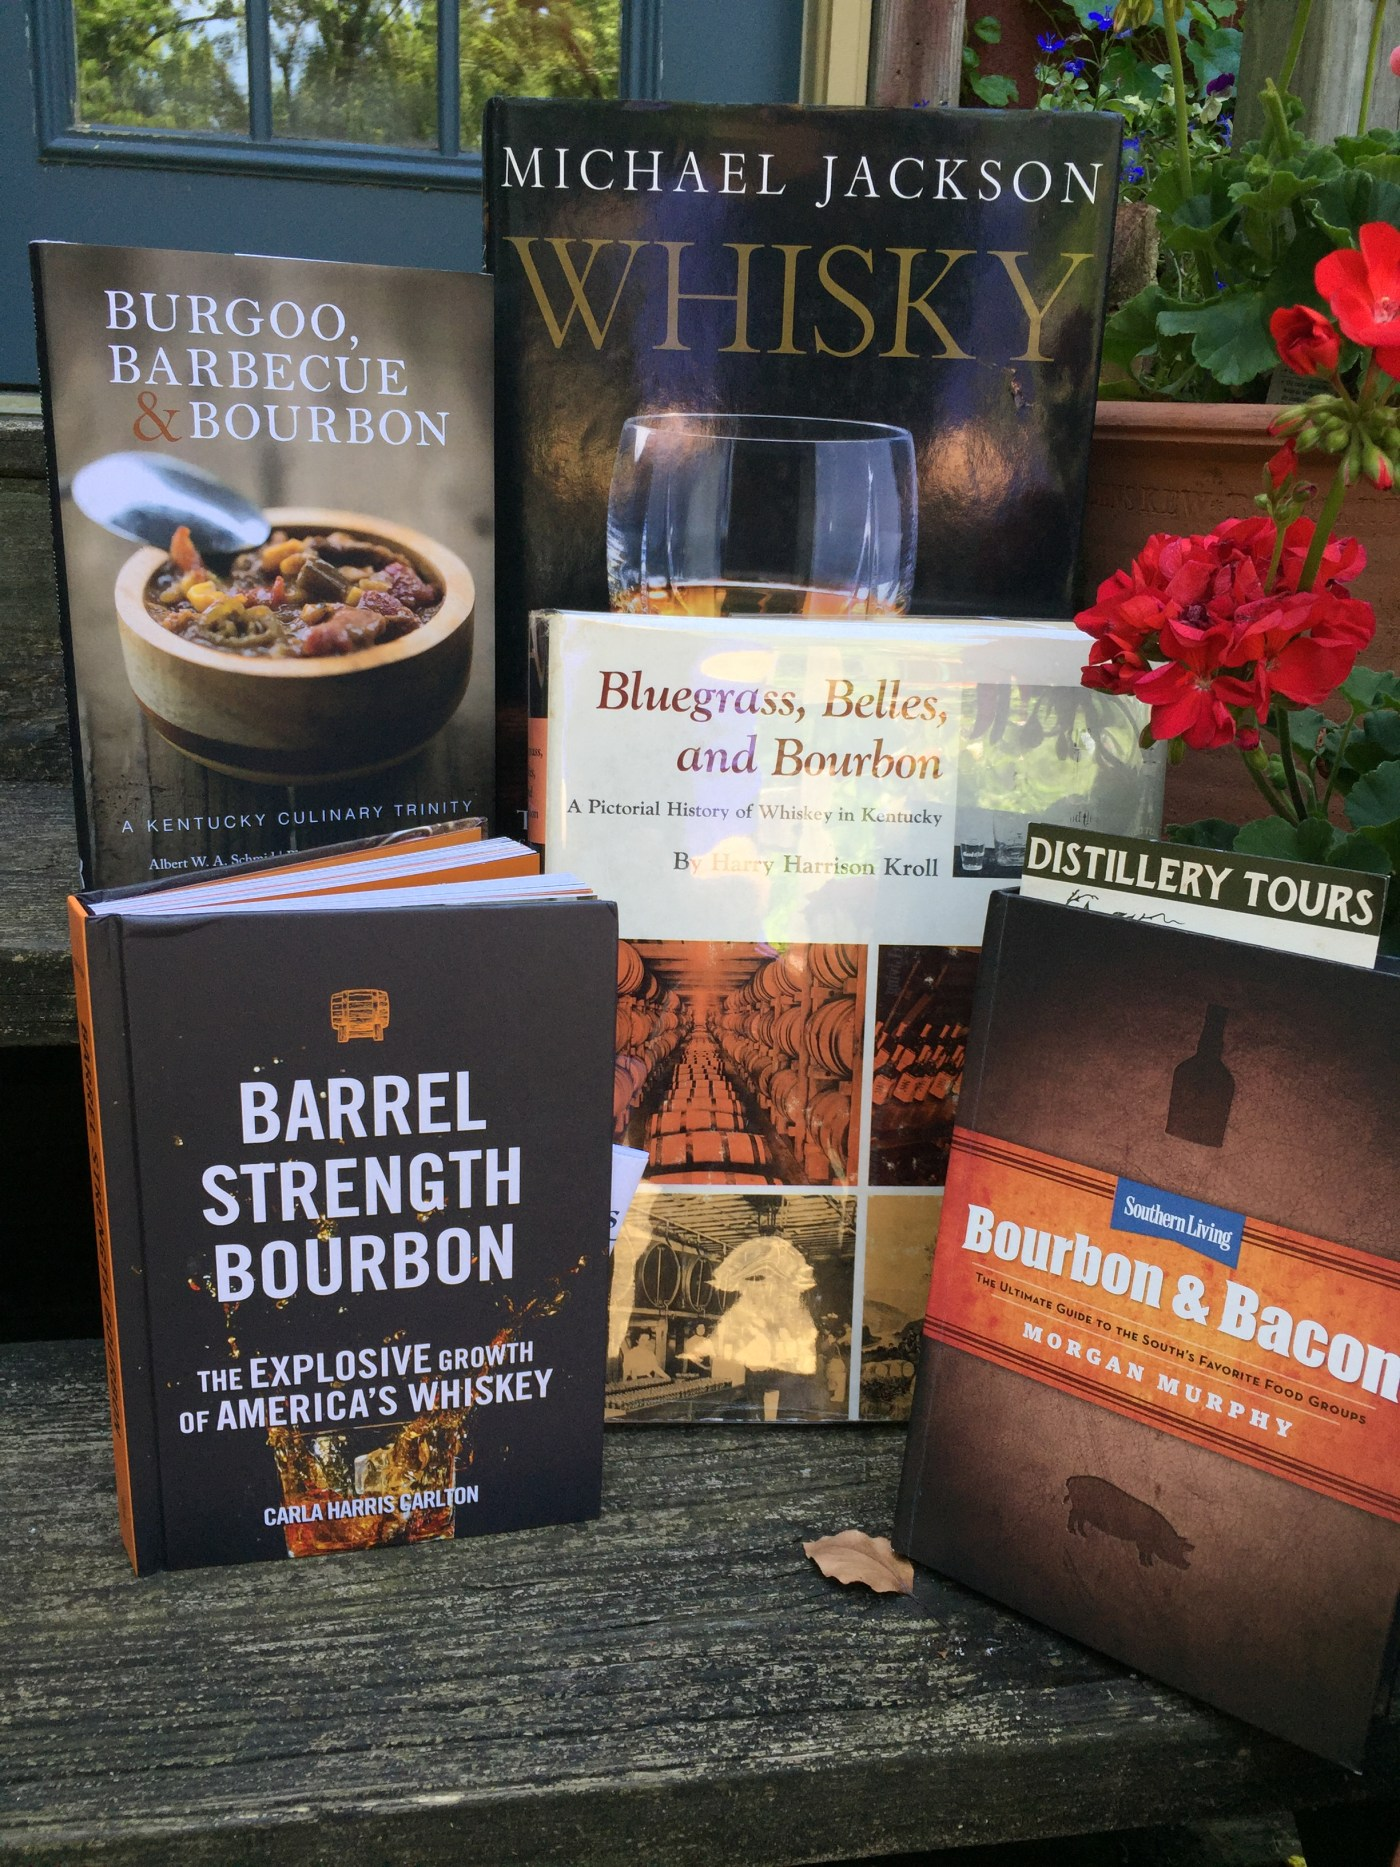 Summer 2017 bourbon reading list bourbonveachdotcom summer means vacations and for many people that includes a nice quiet evening of reading a book while lounging in the shade with a glass of bourbon forumfinder Gallery